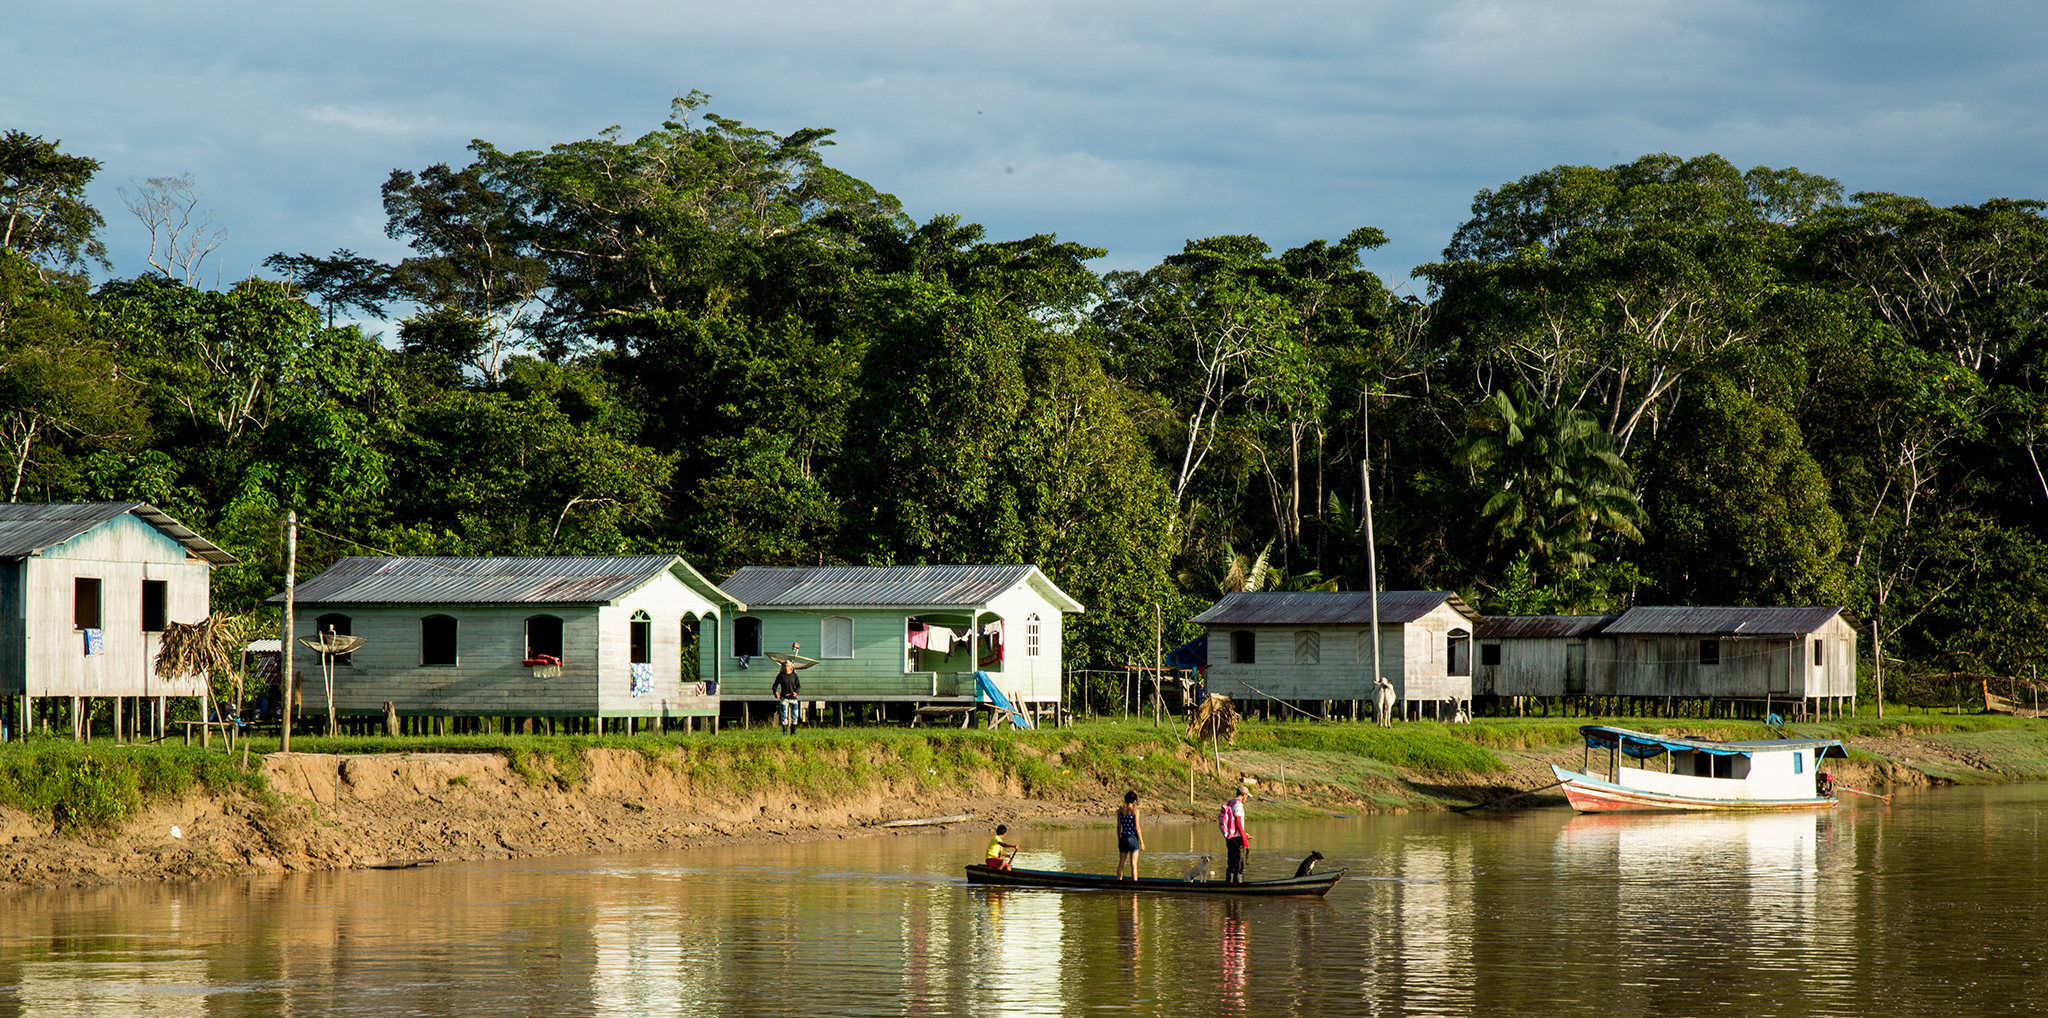 Villagers cross the river to attend school on the opposite banks of the Rio Liberdade.